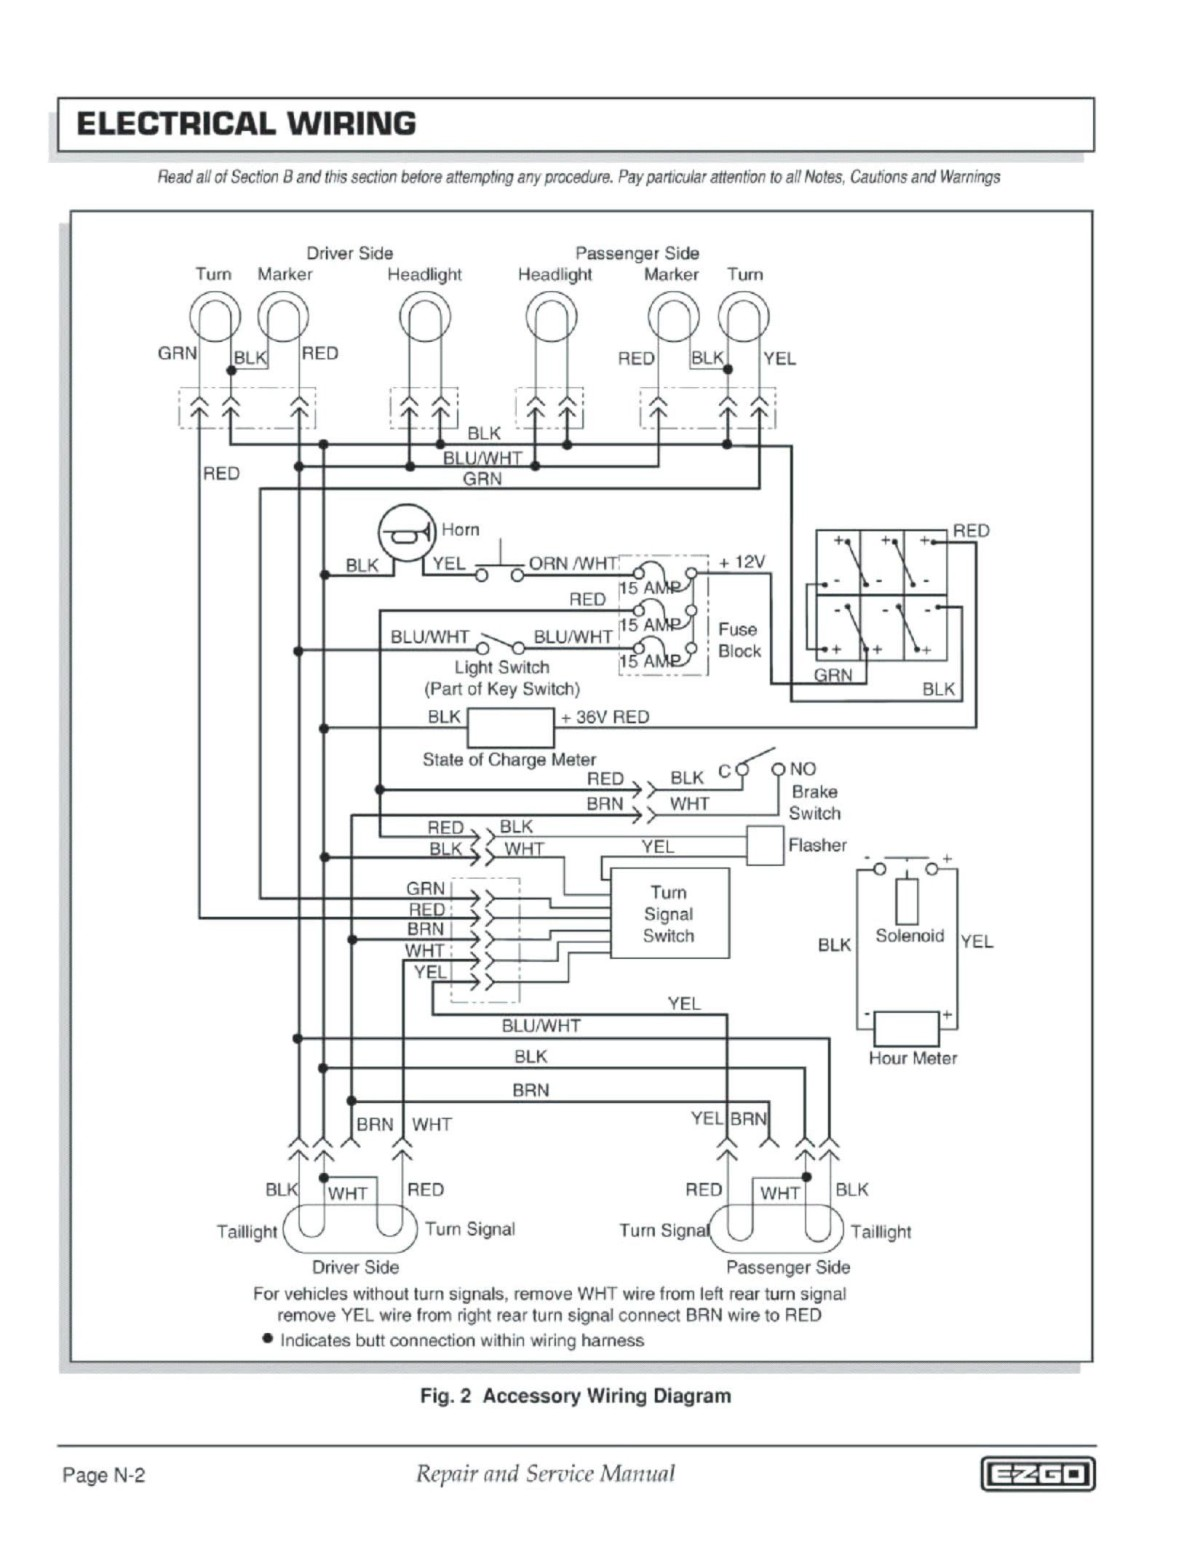 Dometic A/c Wiring Diagram